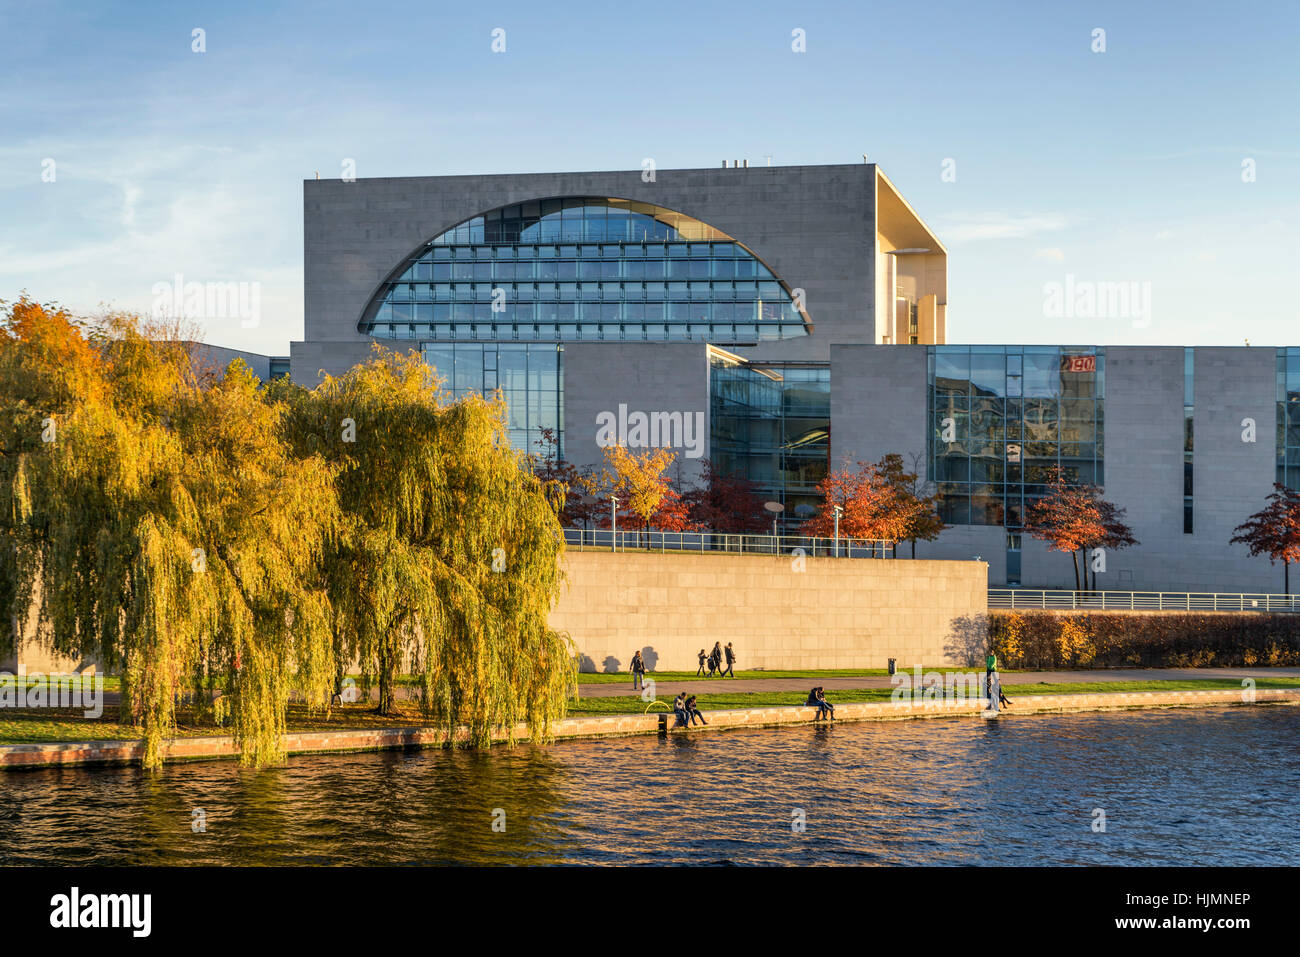 Bundeskanzleramt , federal chacellery, autumn, River Spree, Berlin, Germany - Stock Image